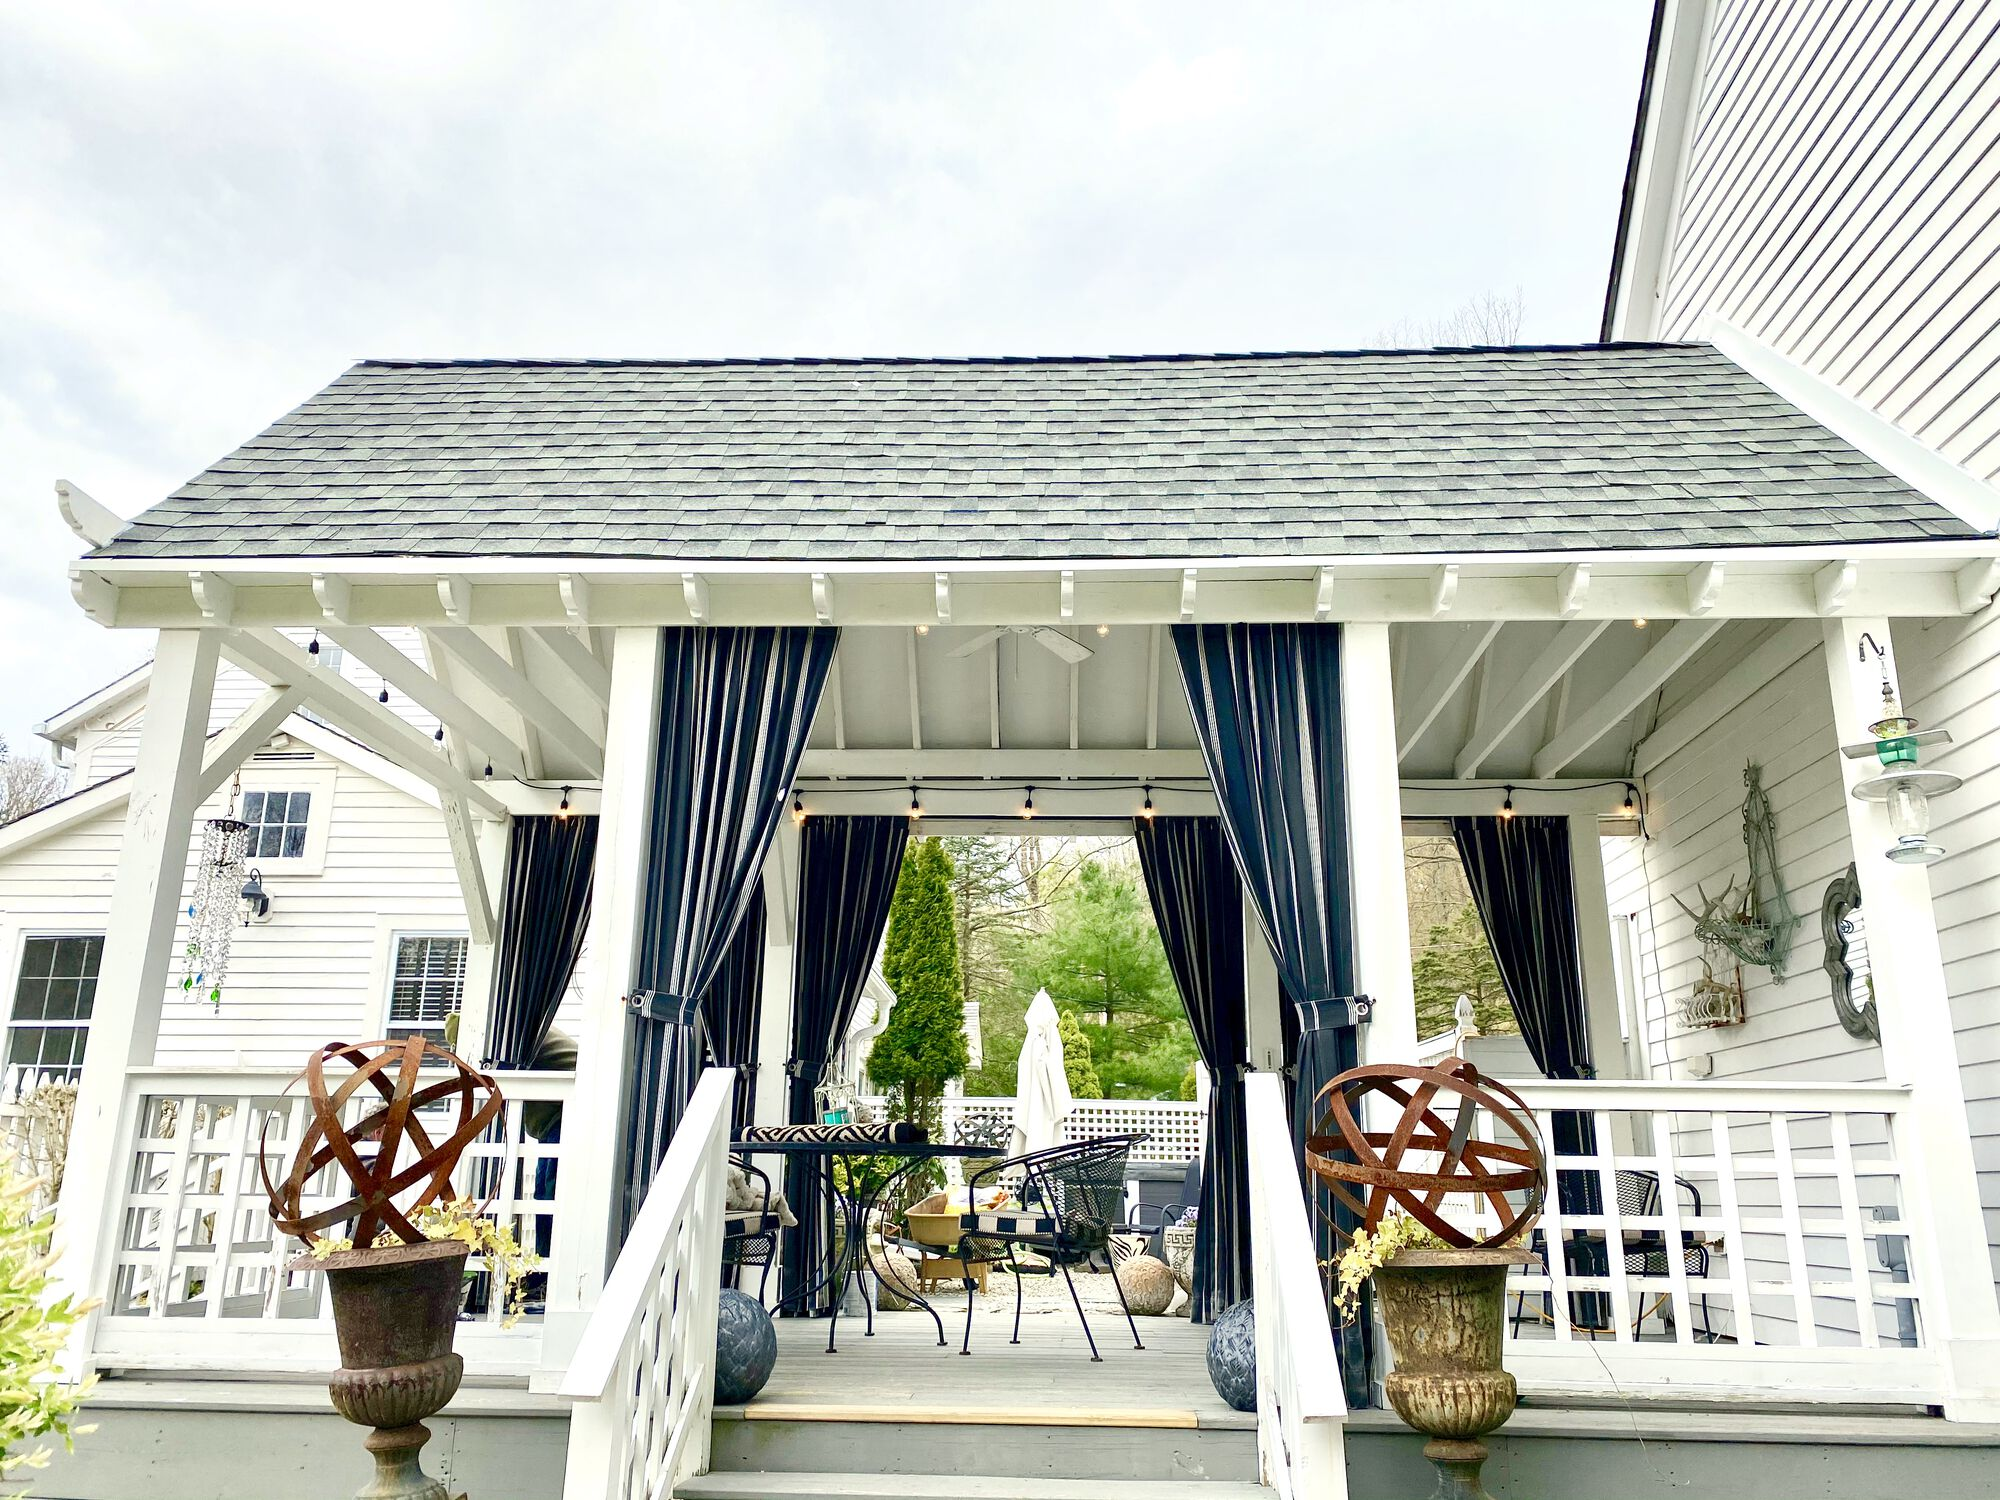 Covered Porch with GAF Lifetime Roofing and Trim in Sparta, Sussex County NJ